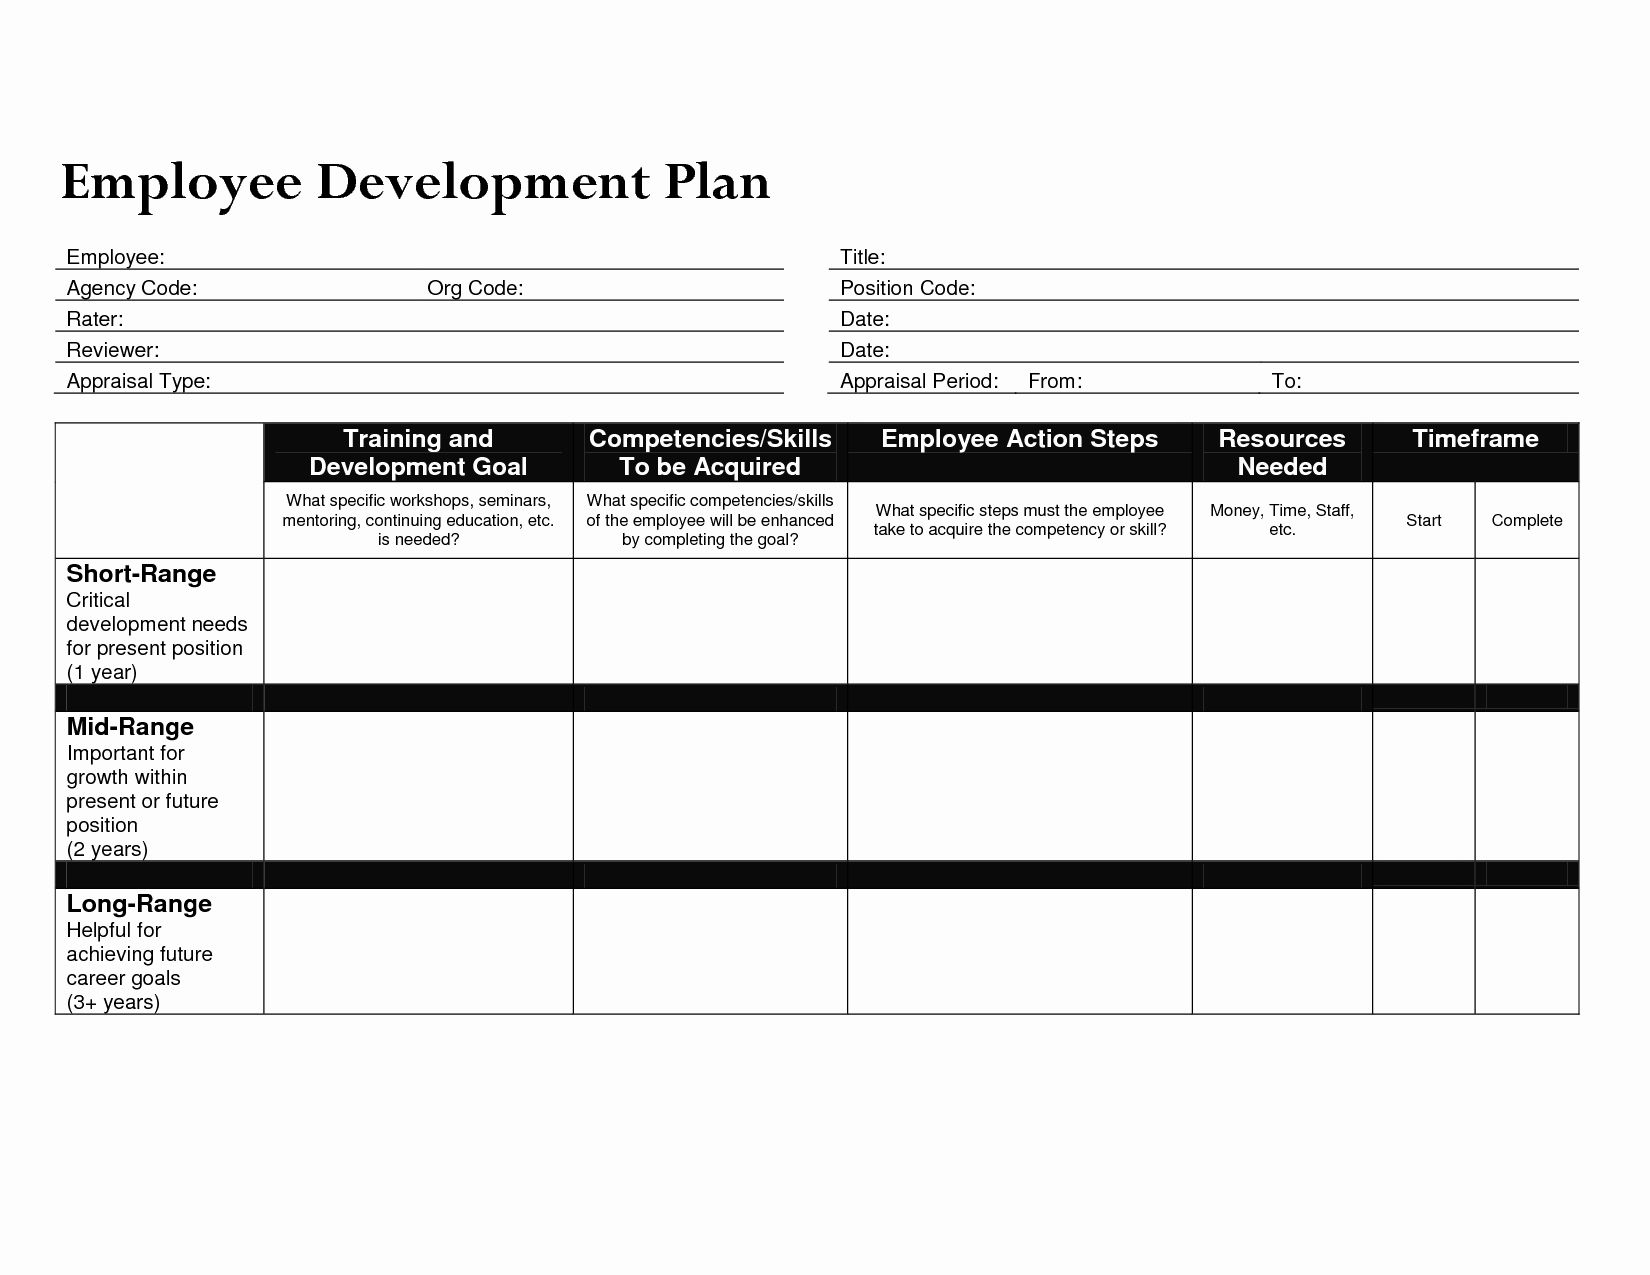 Employee Development Plans Templates Awesome Employee